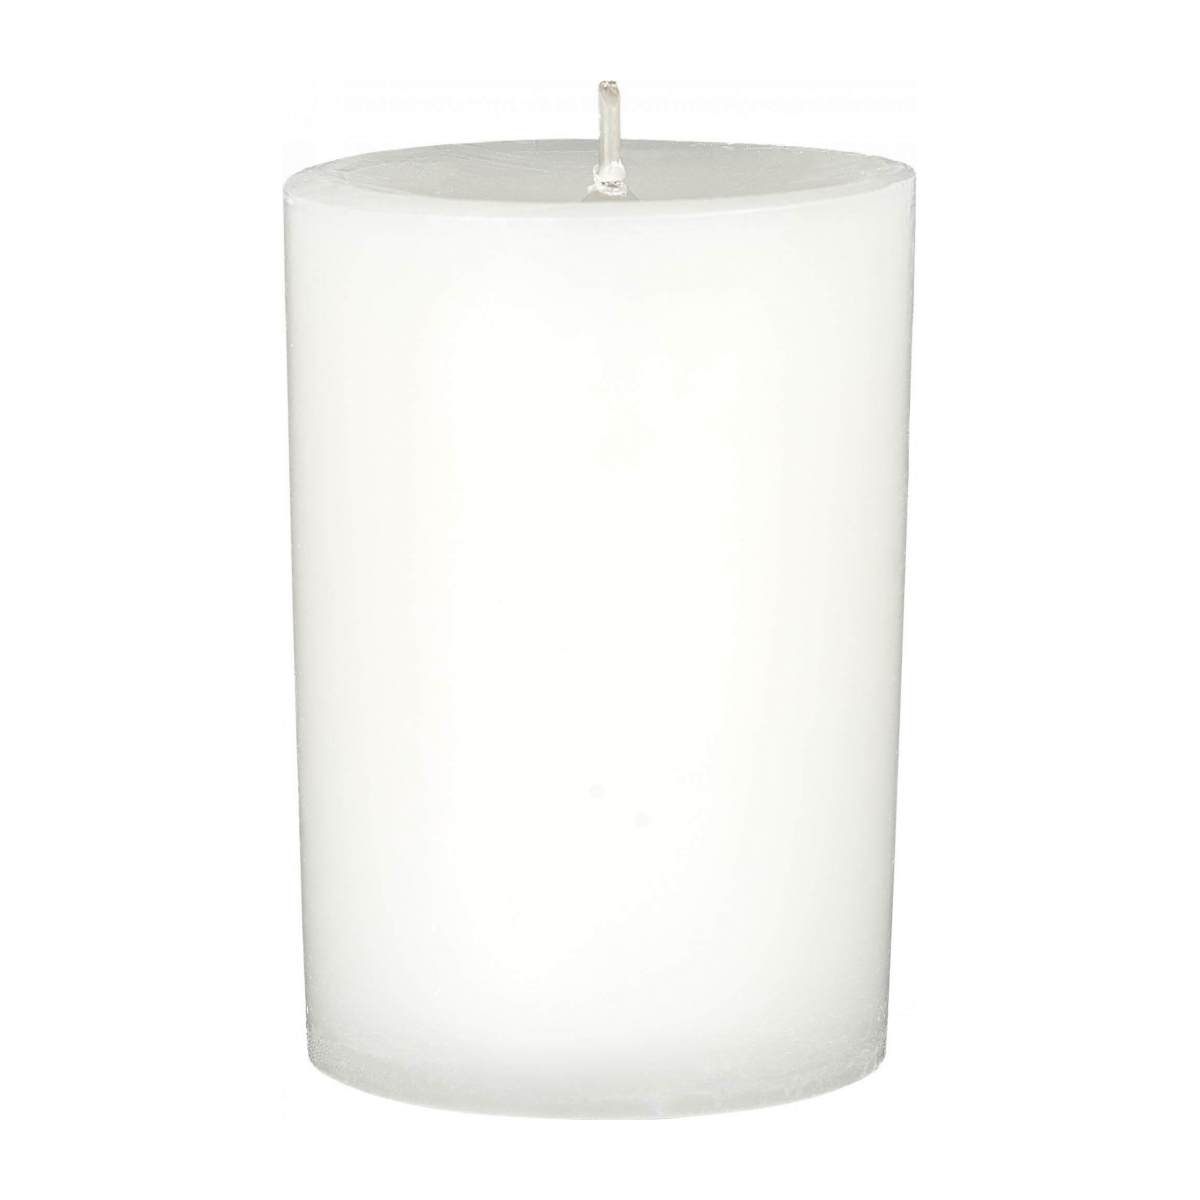 Refill for large Palais scented candle, 600g n°2